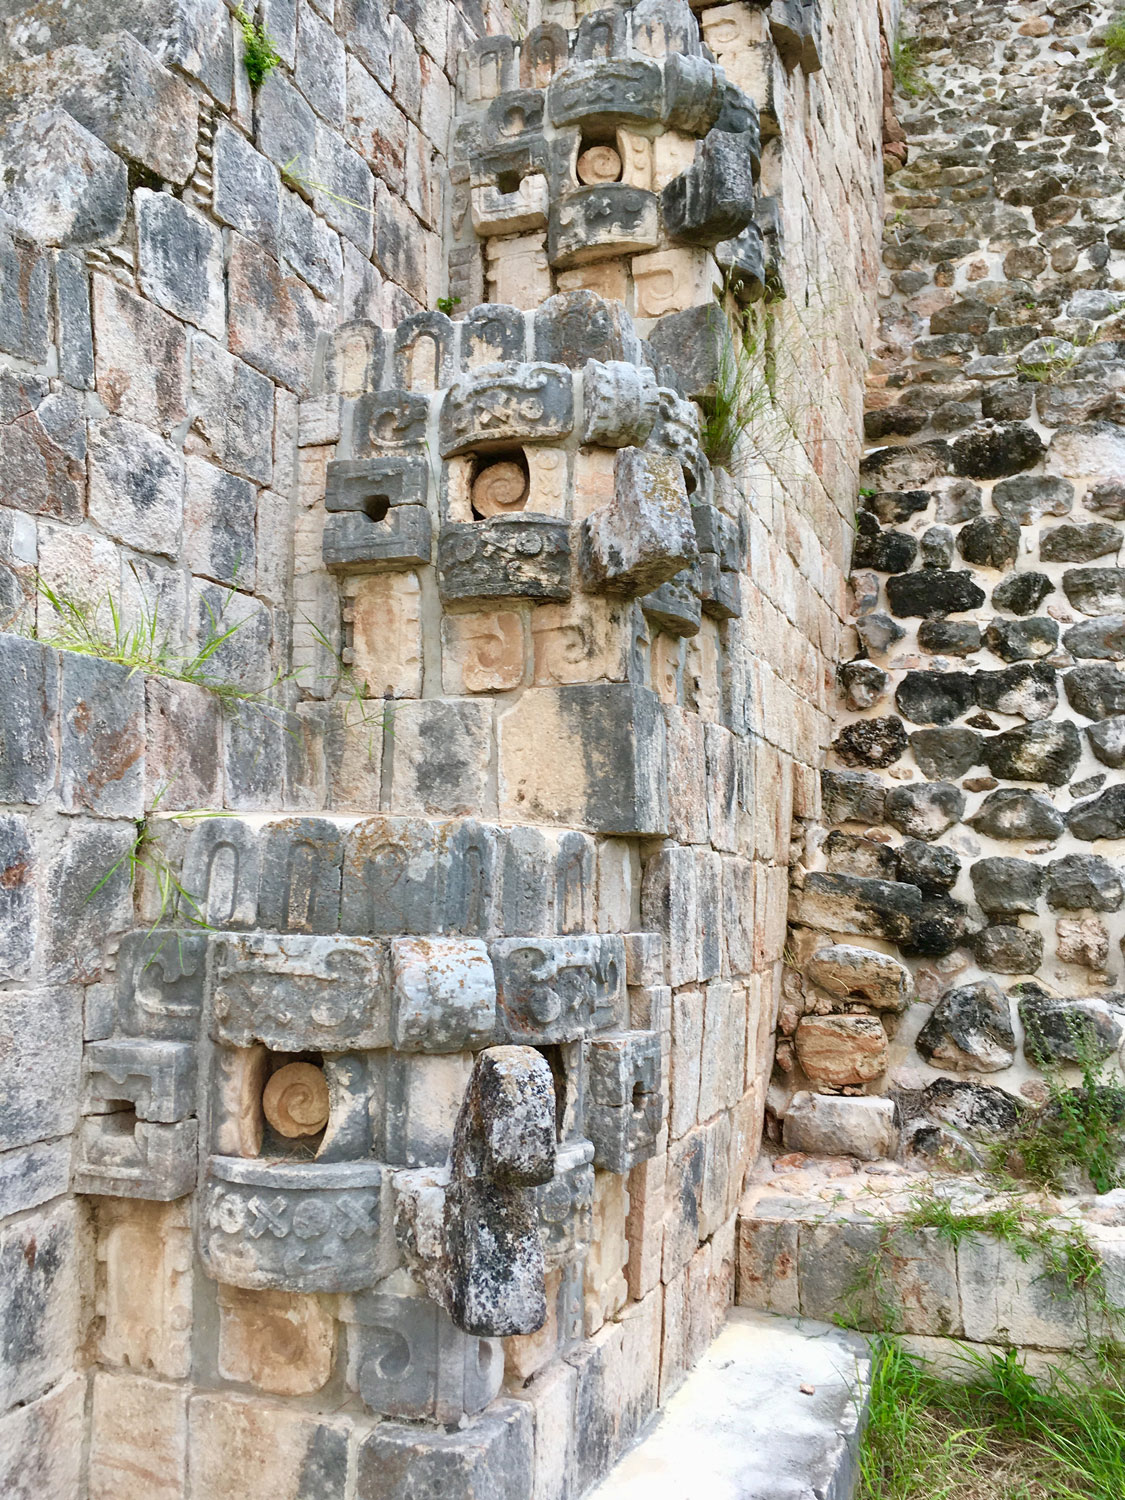 Uxmal Magician's Pyramid. For me this one is a clear cosmic bird..